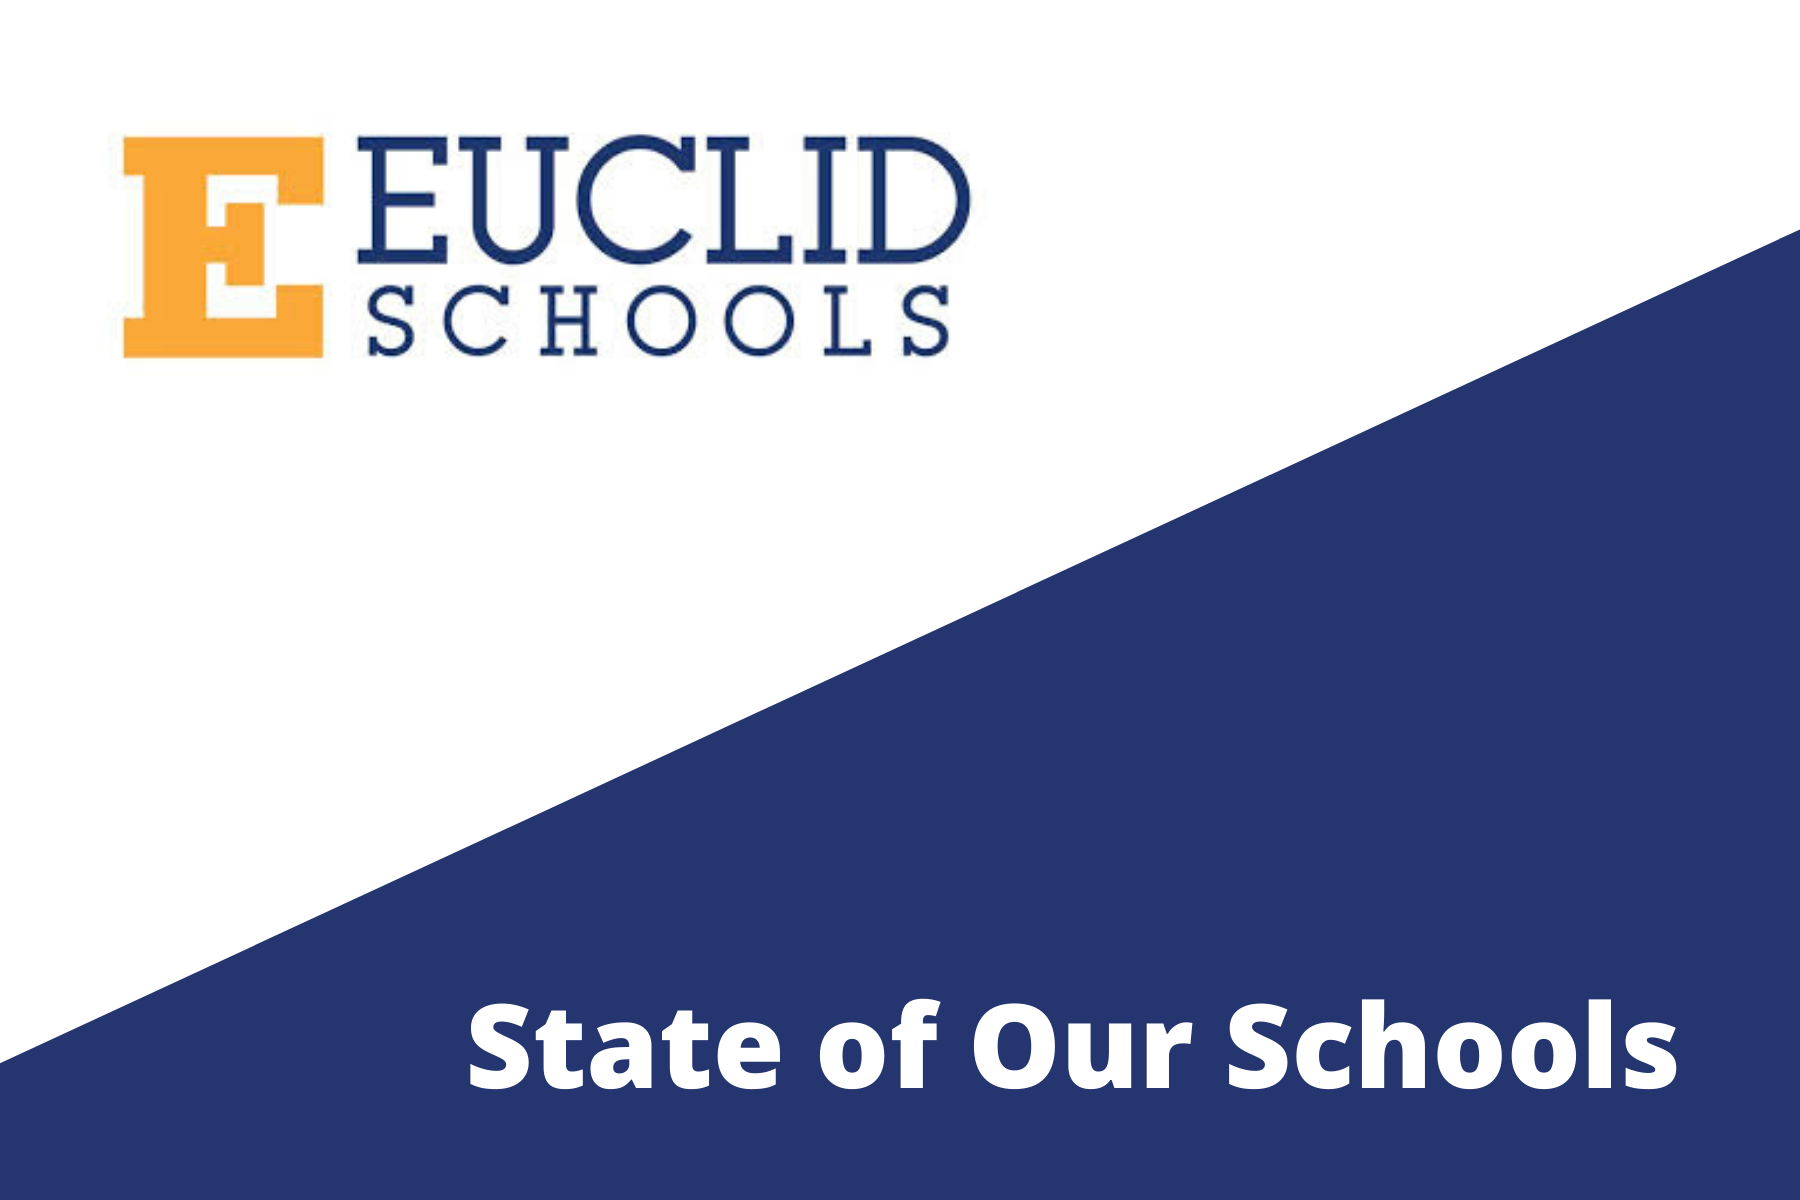 State of Our Schools logo